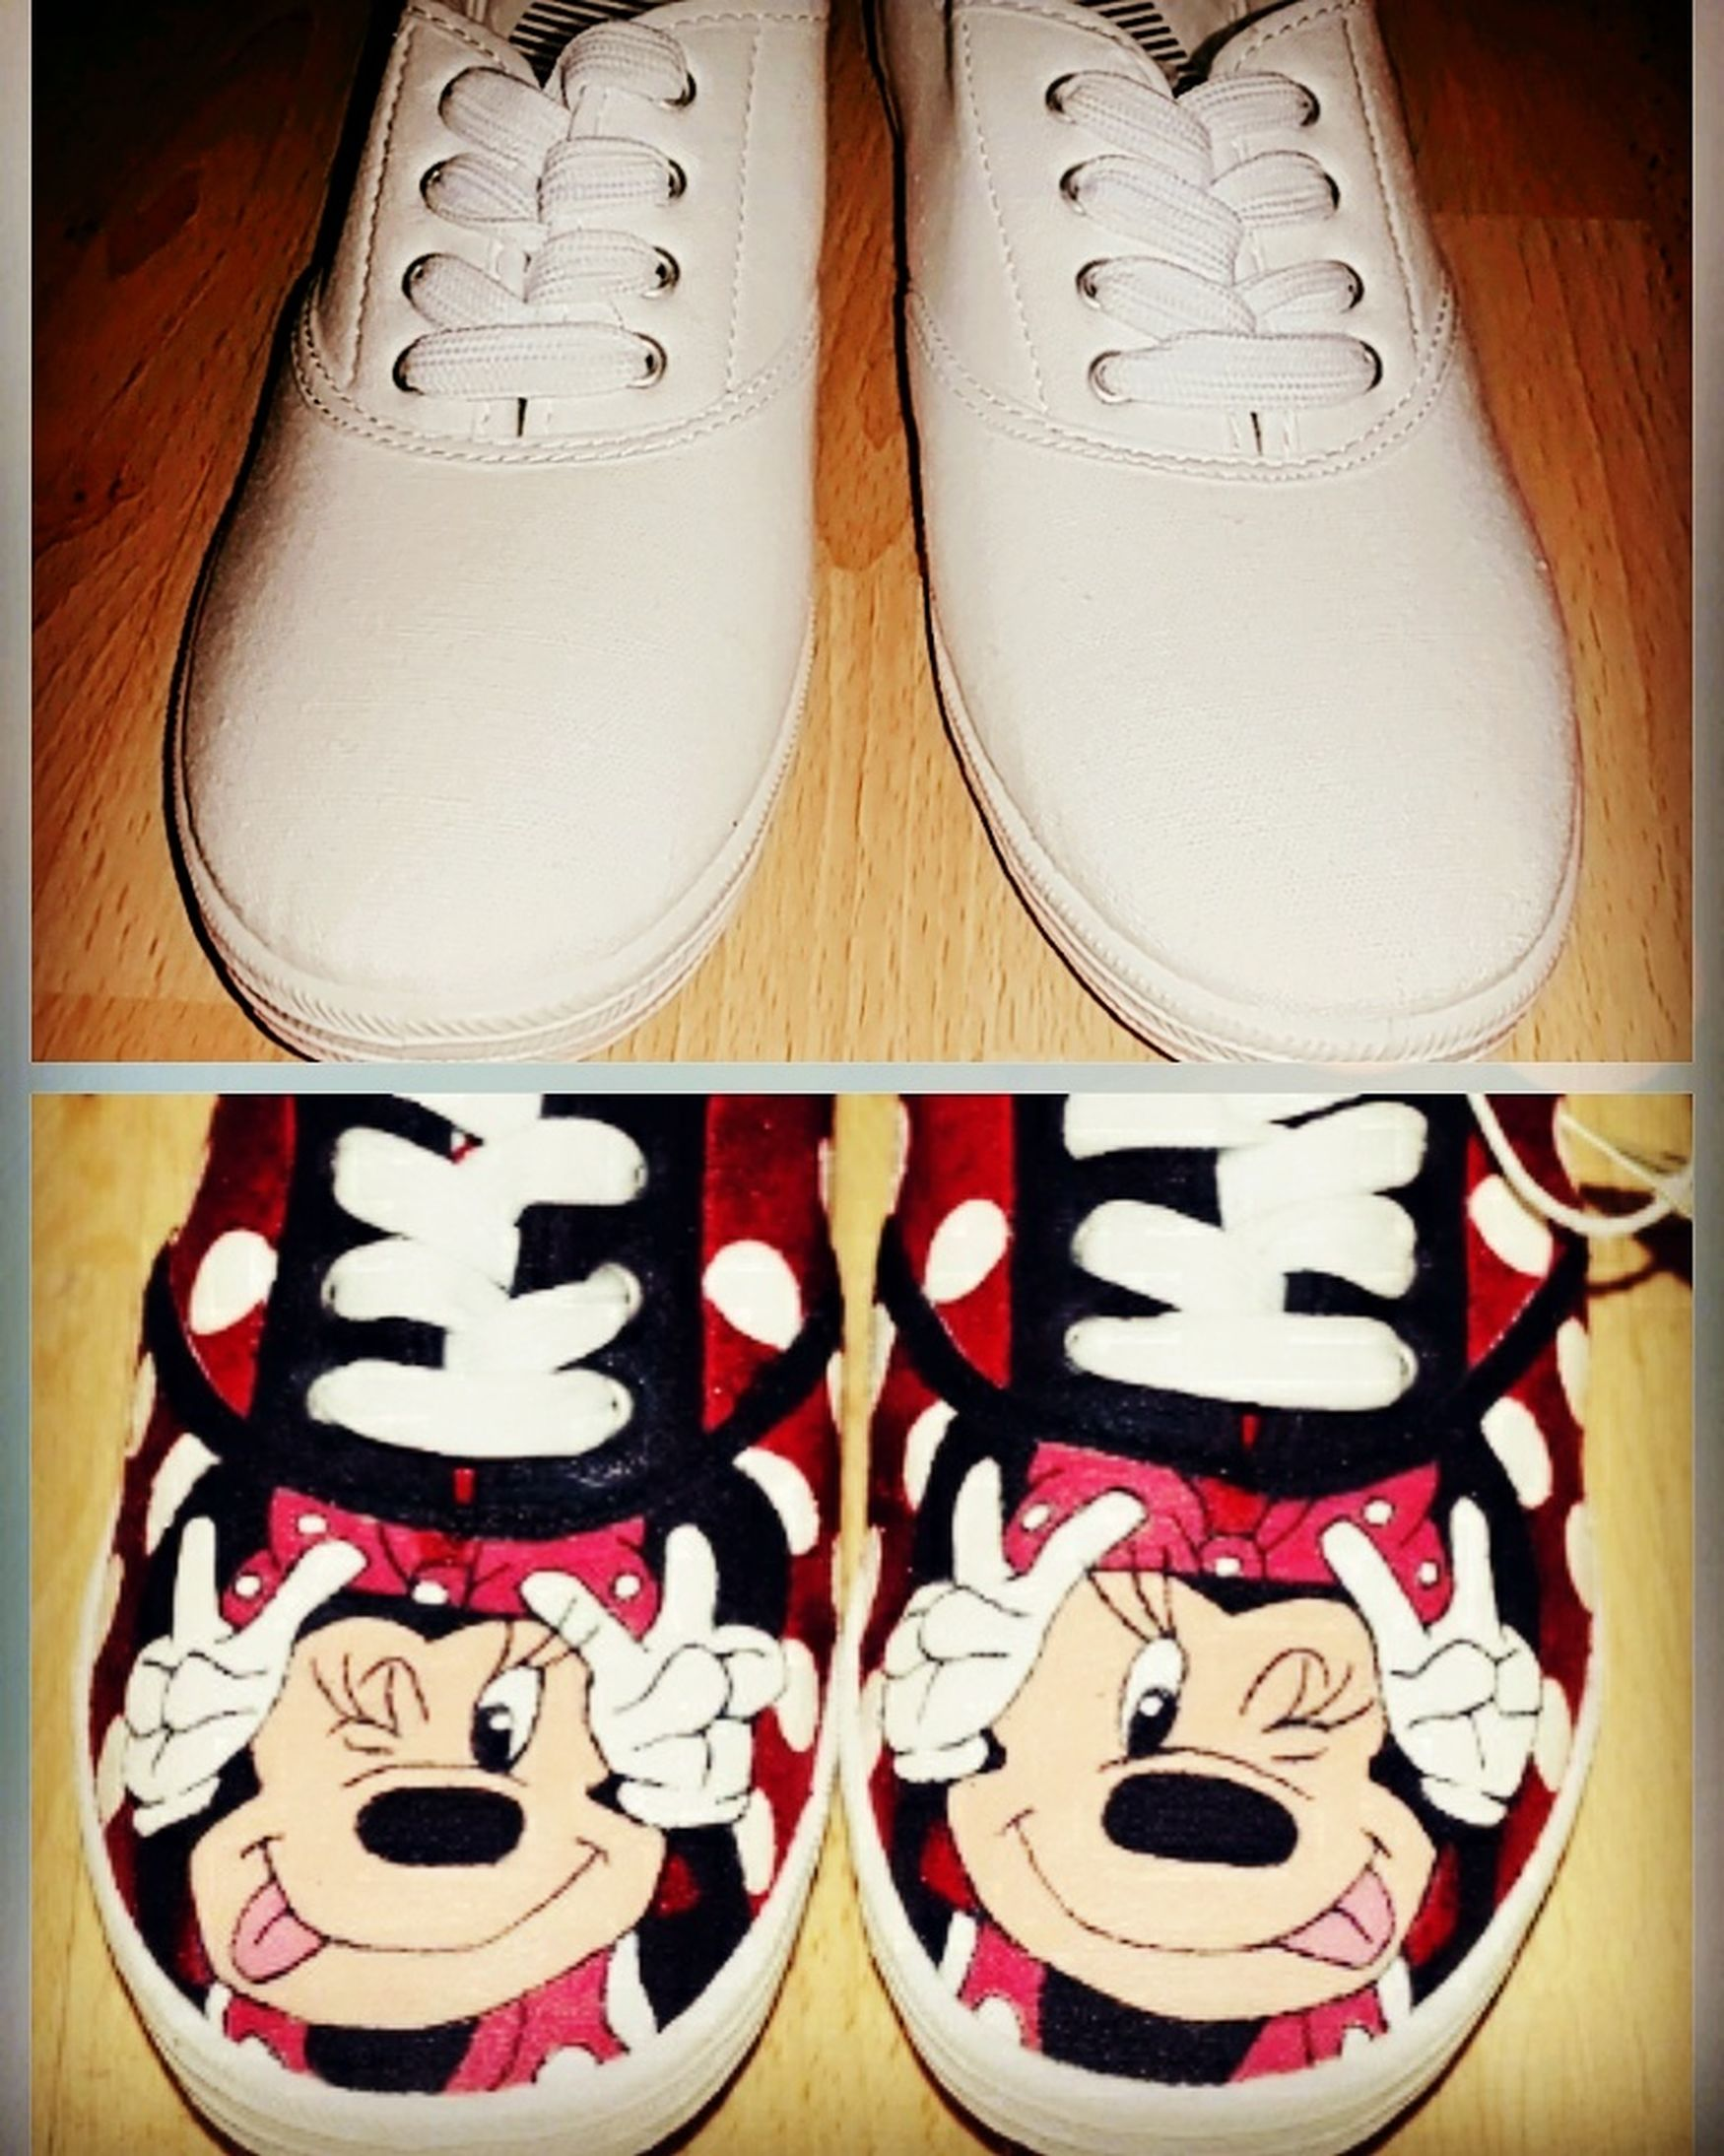 Minnie sneakers before after custom by me Sneakershop Shoesoftheday Customise Custom Sneakers Addict Shoes Customized Art Sneakersaddict Drawing - Art Product Sneakers Sneakers ♥ Shoe Sneakershoutouts Sneakers Of EyeEm Sneakershouts Shoestagram Drawing Minnie Mouse Minnie Minniemouse